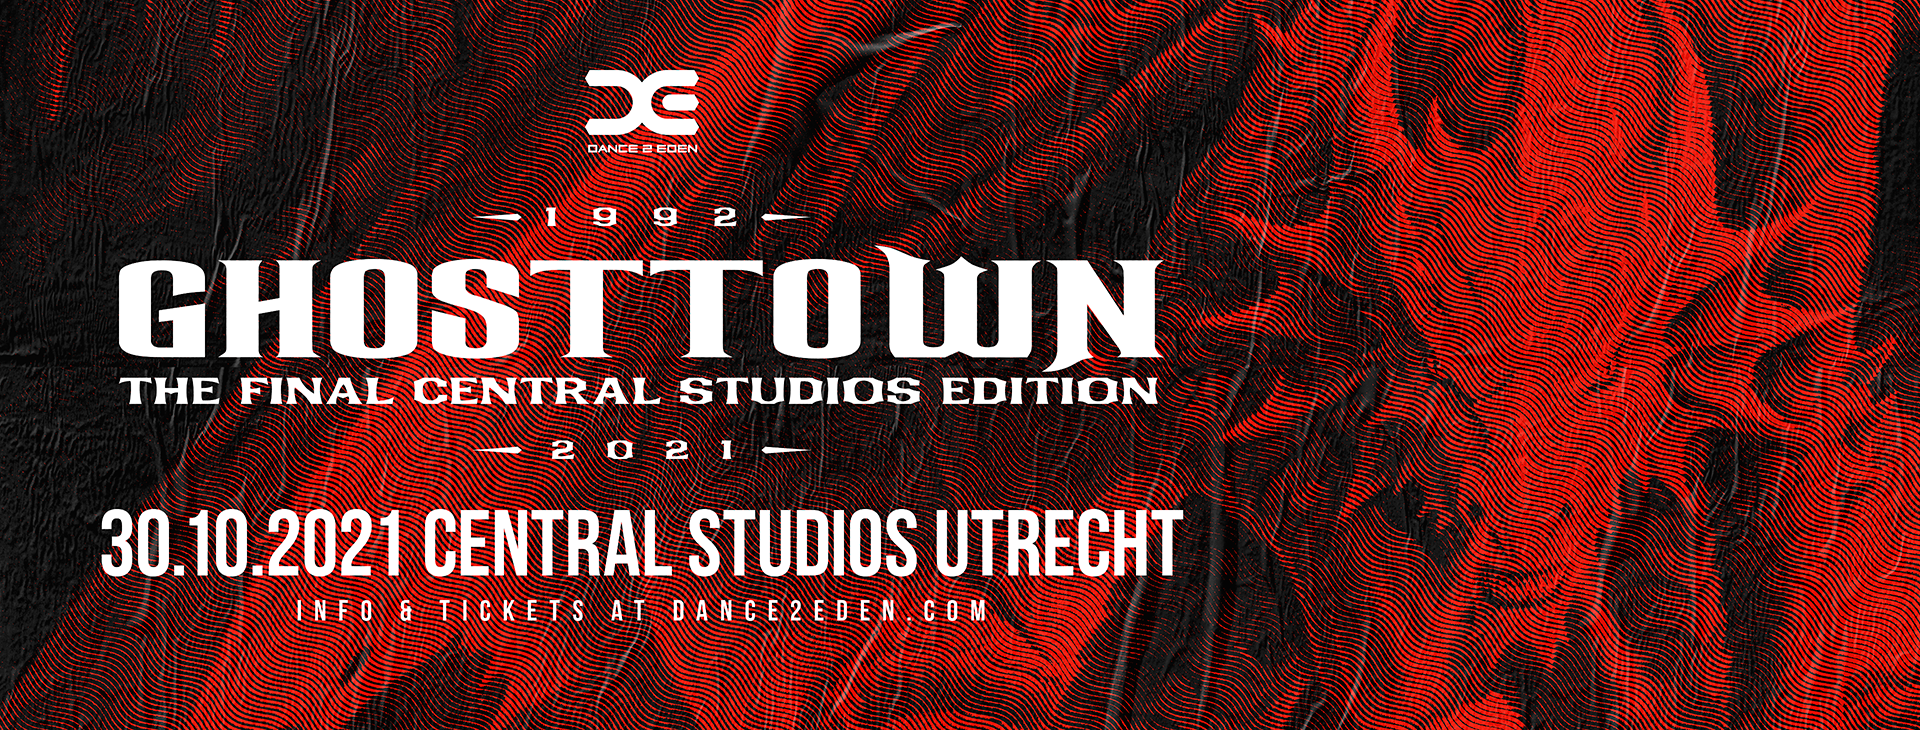 Ghosttown | The Final Central Studios Edition